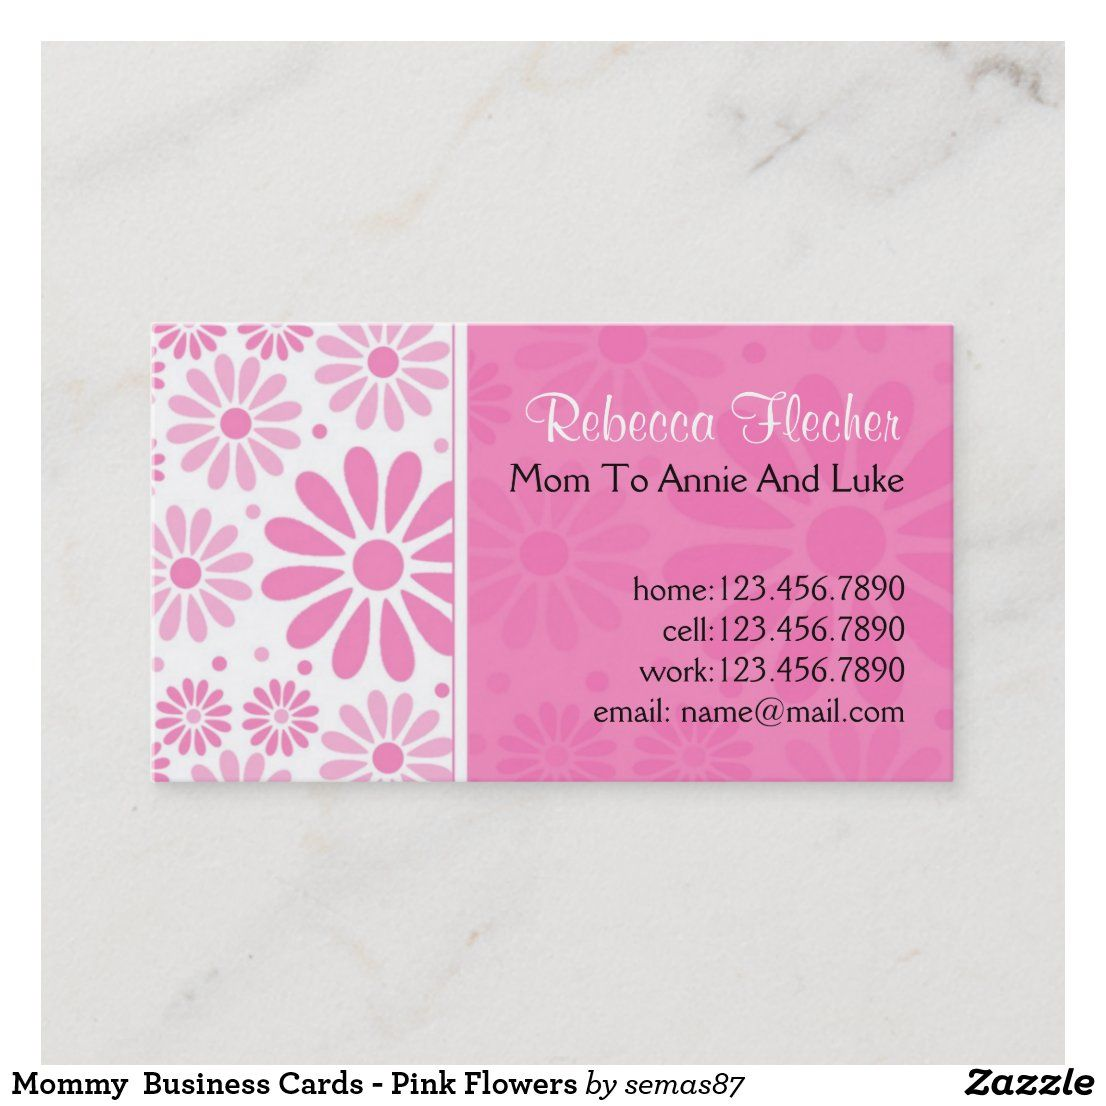 Mommy Business Cards Pink Flowers Zazzle Com Cool Business Cards Unique Business Cards Business Card Size